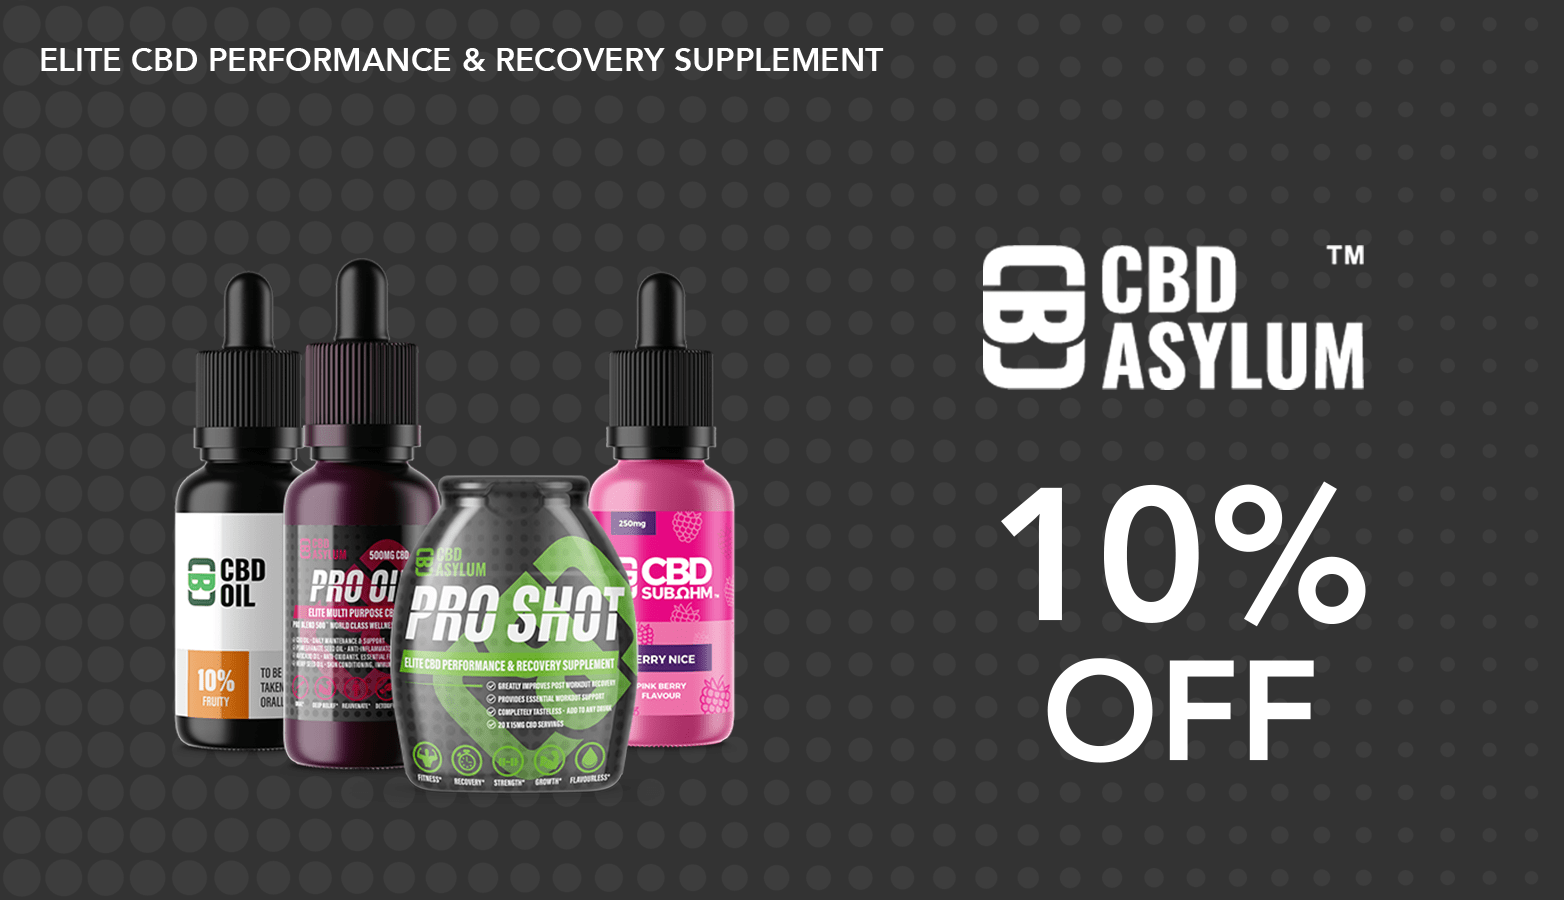 CBDAsylum CBD Coupon Code discounts promos save on cannabis online Website